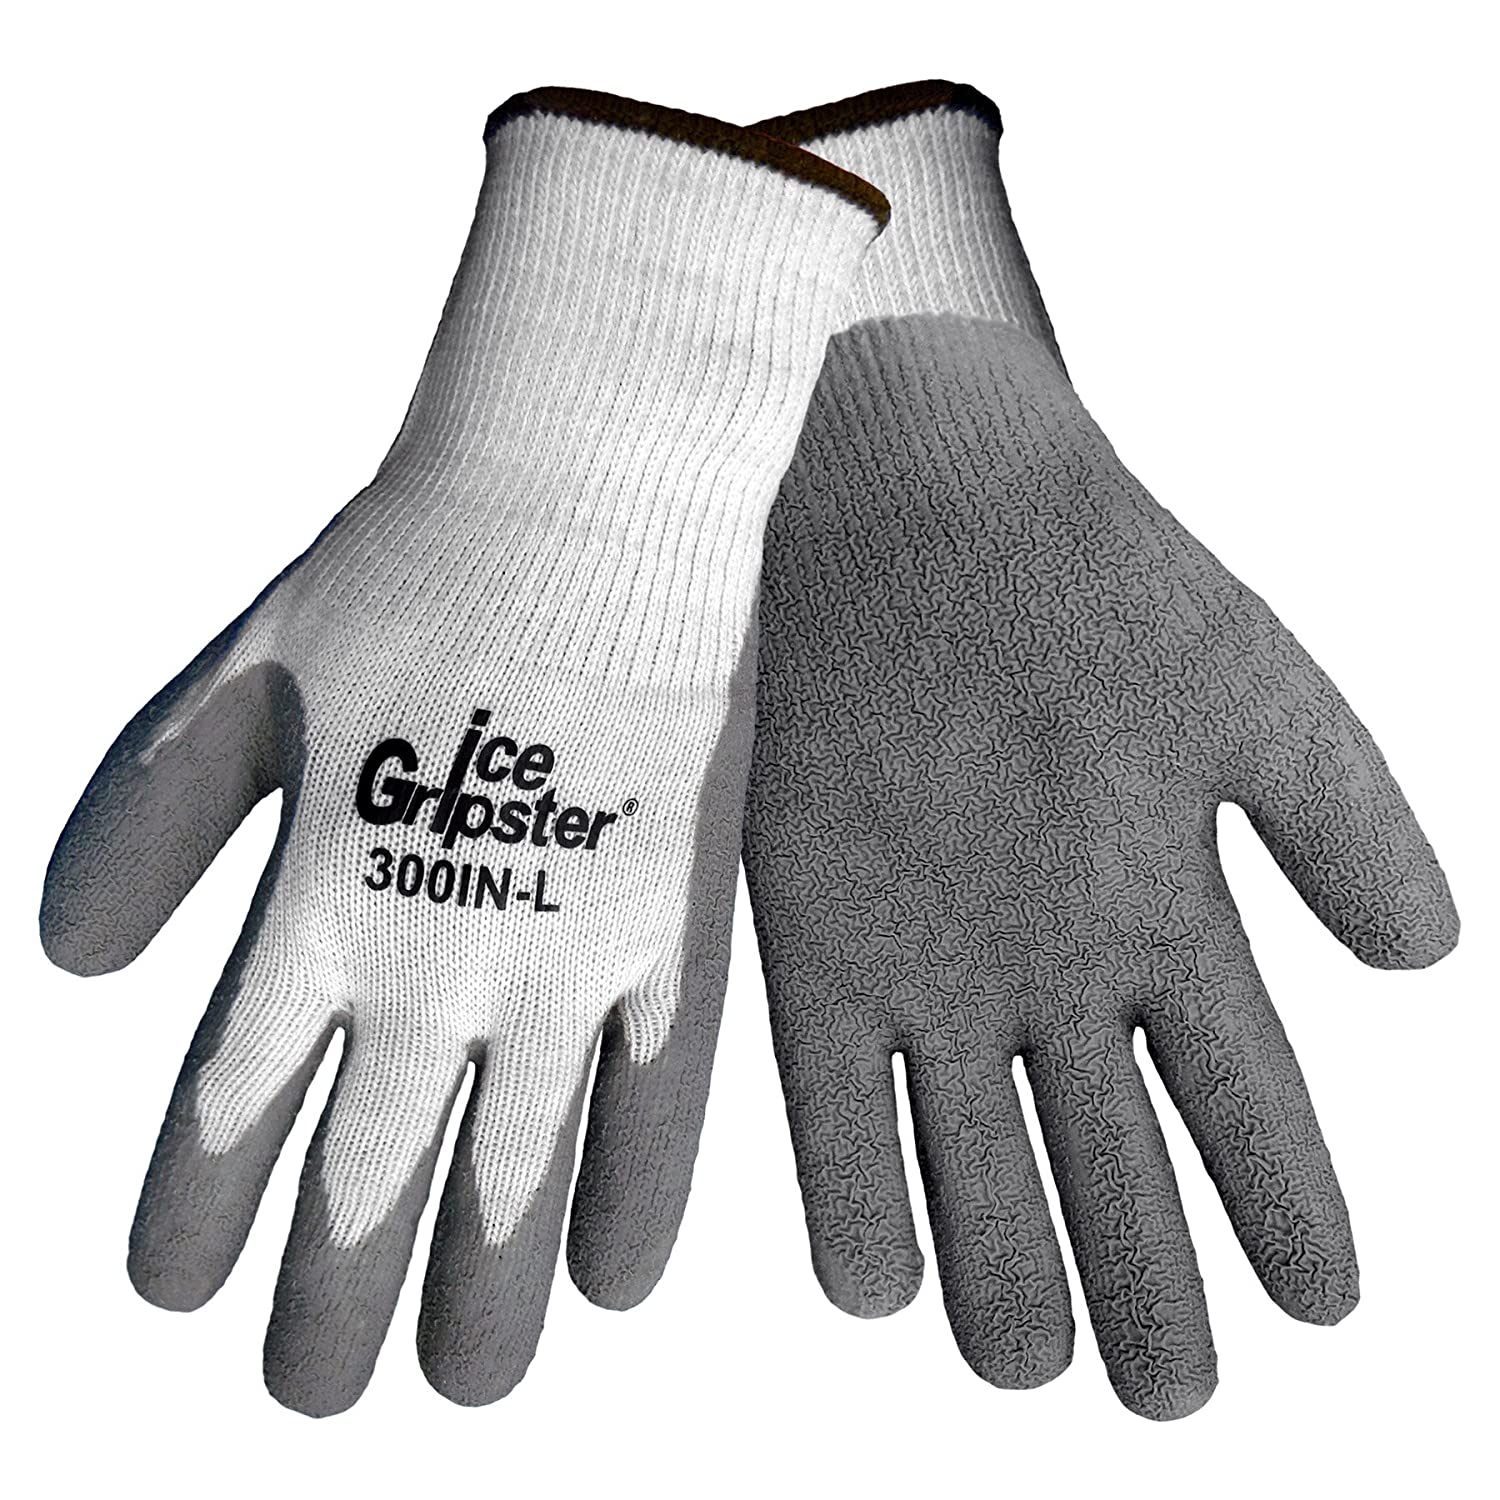 Global Glove 300IN Ice Gripster Insulated Acrylic Flat Dipped Glove, Work, Medium, Black (Case of 72) by Global Glove B00AIXR5IY